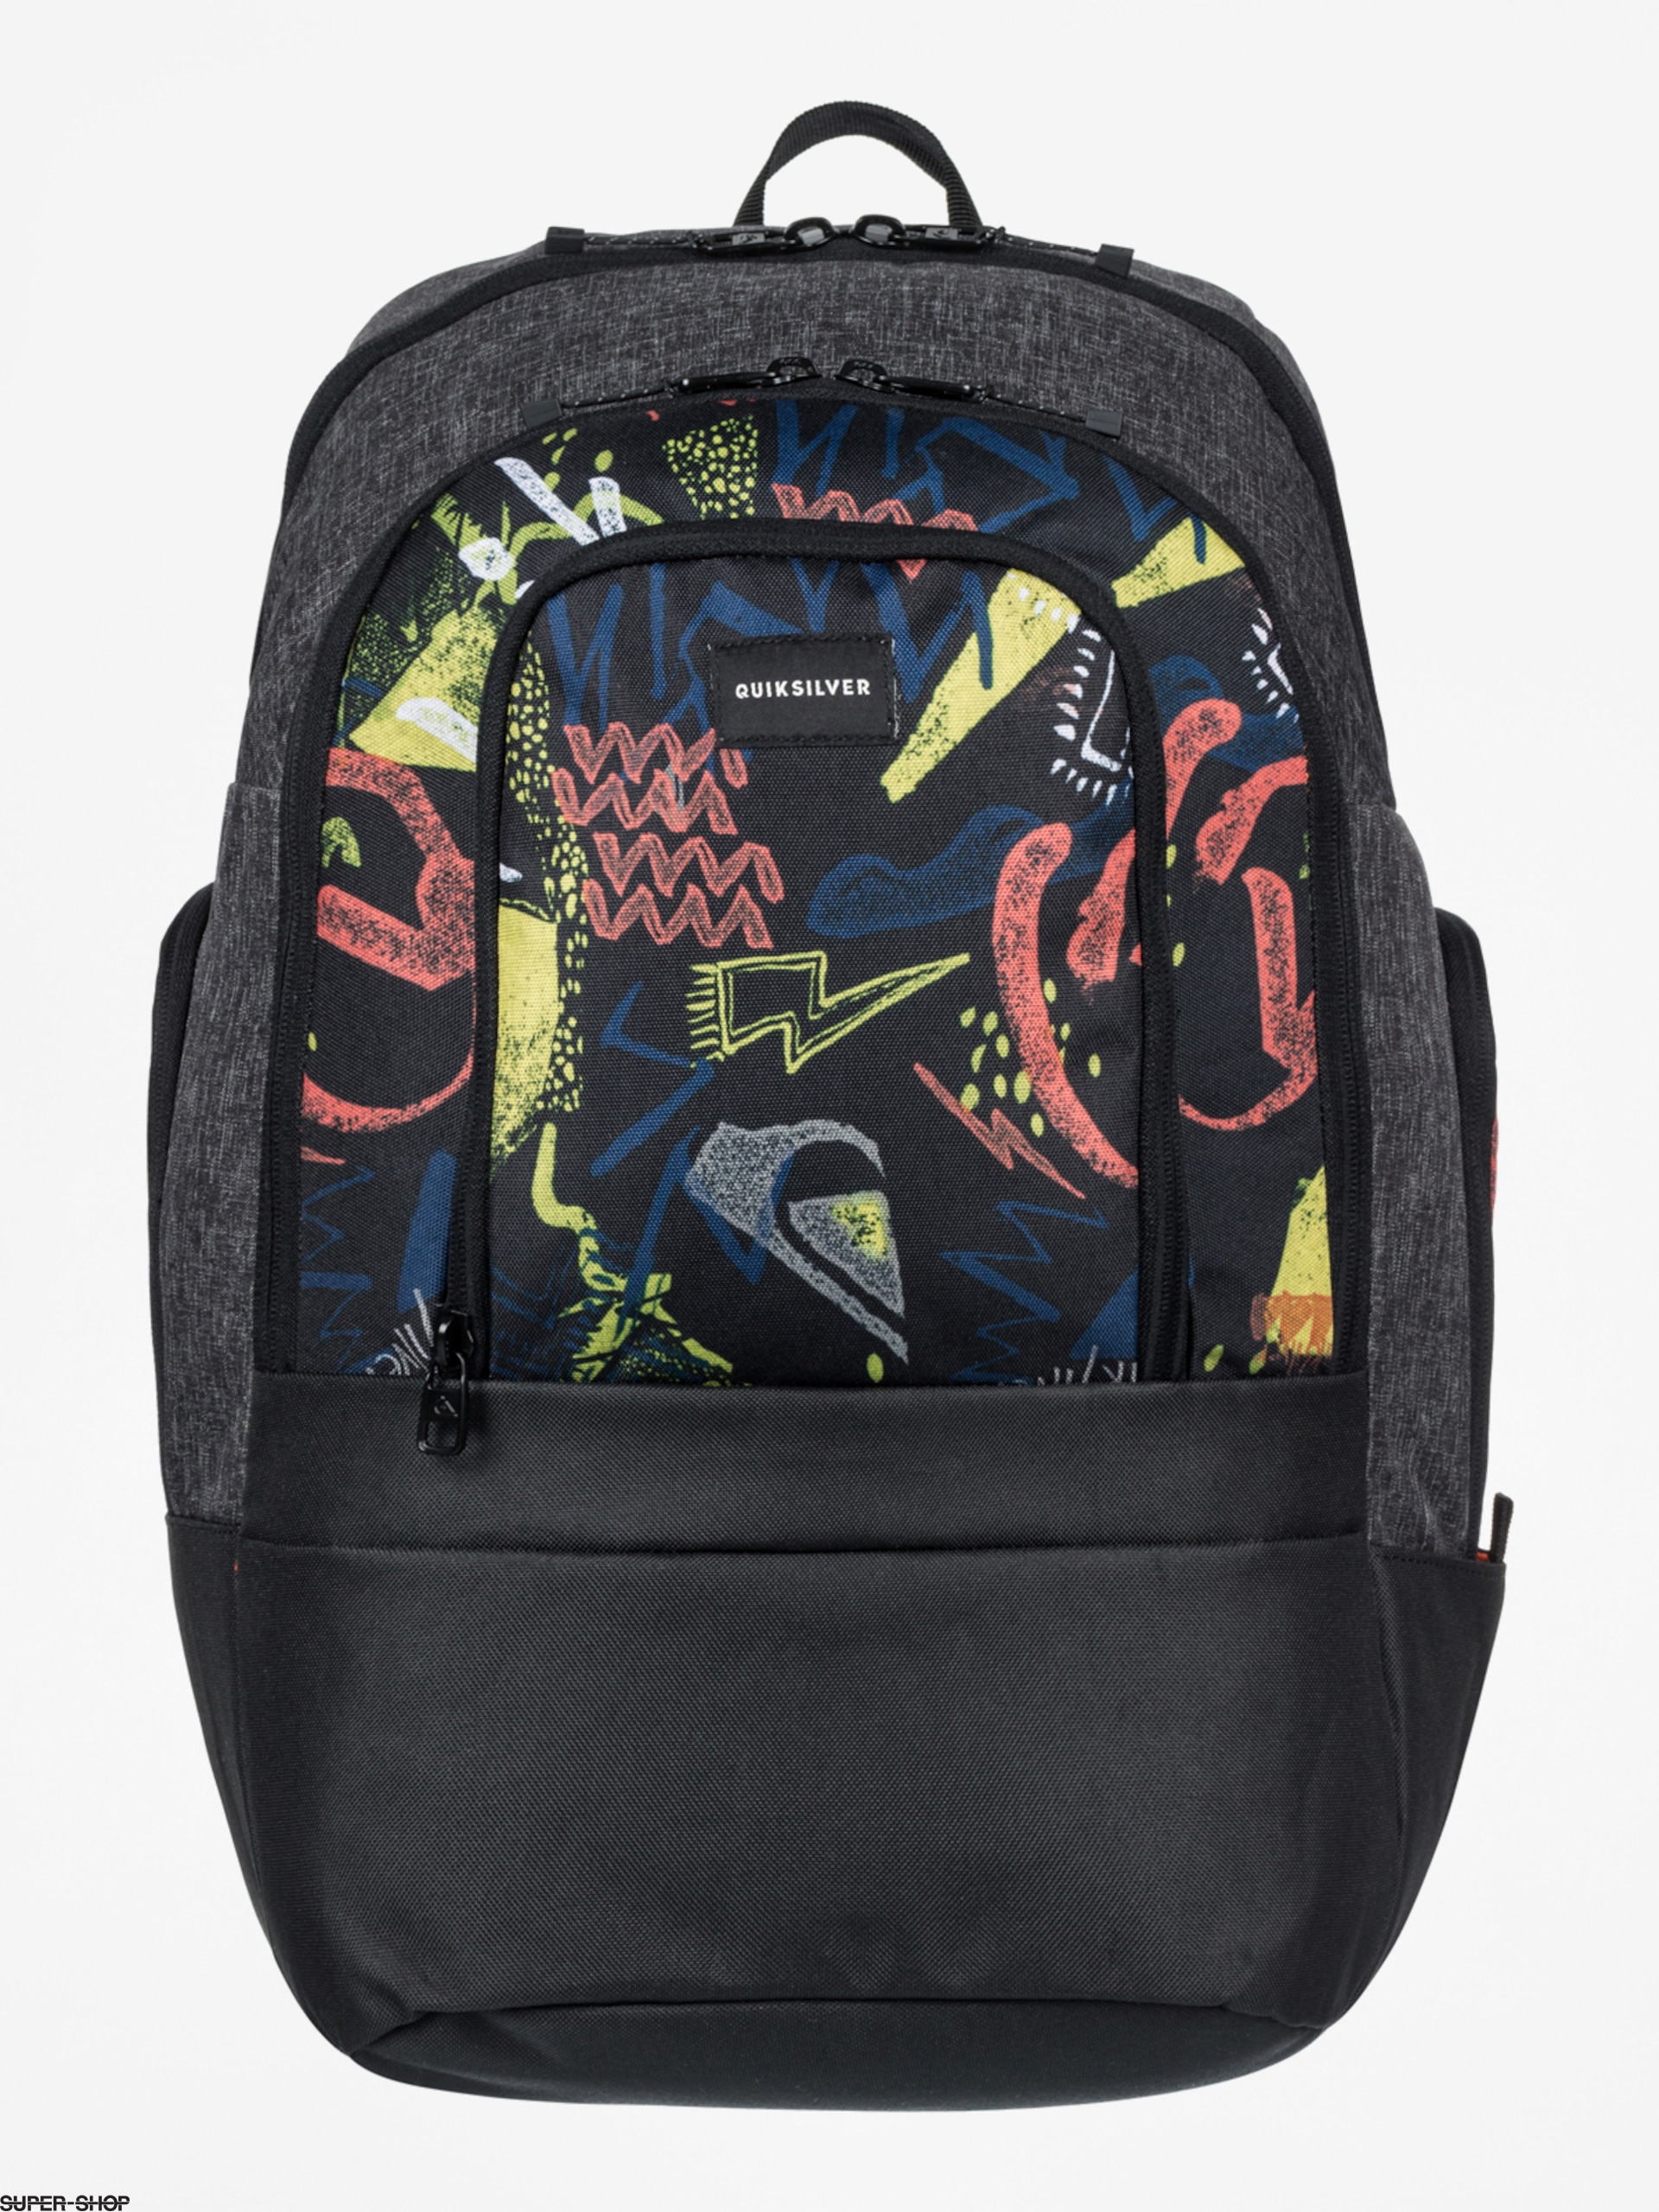 Quiksilver Backpack 1969 Special (black thunder bolts)